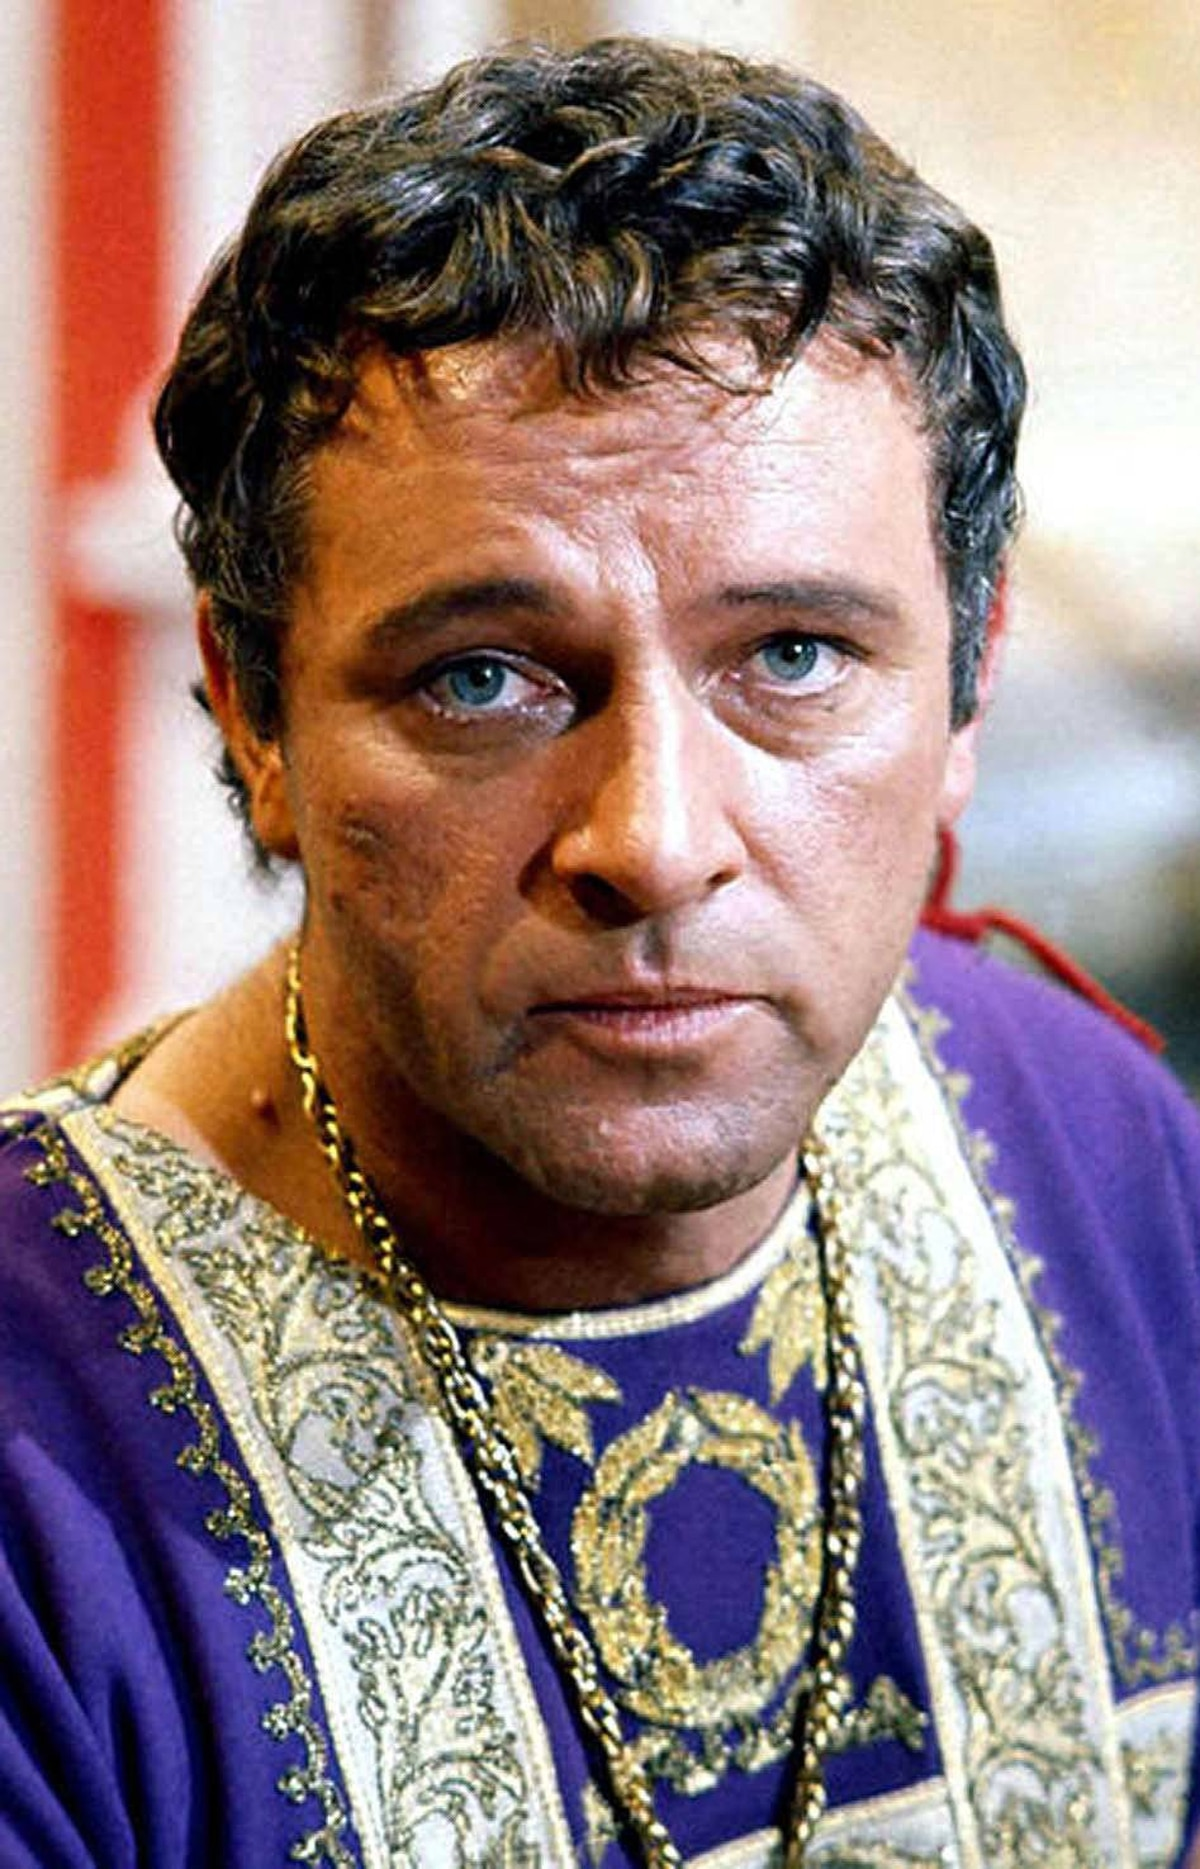 "MOVIE The Robe Vision, 11 p.m. ET; 8 p.m. PT The first movie ever released in the big-screen process of CinemaScope, this 1953 biblical epic was billed as ""the modern miracle you see without glasses!"" (a not-so-sly dig at the 3-D movie craze at the time). Richard Burton plays the cynical Roman tribune Marcellus, who is sent to Jerusalem to assist in the crucifixion of Jesus Christ. While gambling with his fellow soldiers Marcellus wins the robe Jesus wore to his death and is immediately stricken with violent hallucinations. Marcellus believes the curse can be halted by destroying the garment, but first he has to find the robe's new owner: the escaped slave Demetrius (Victor Mature)."